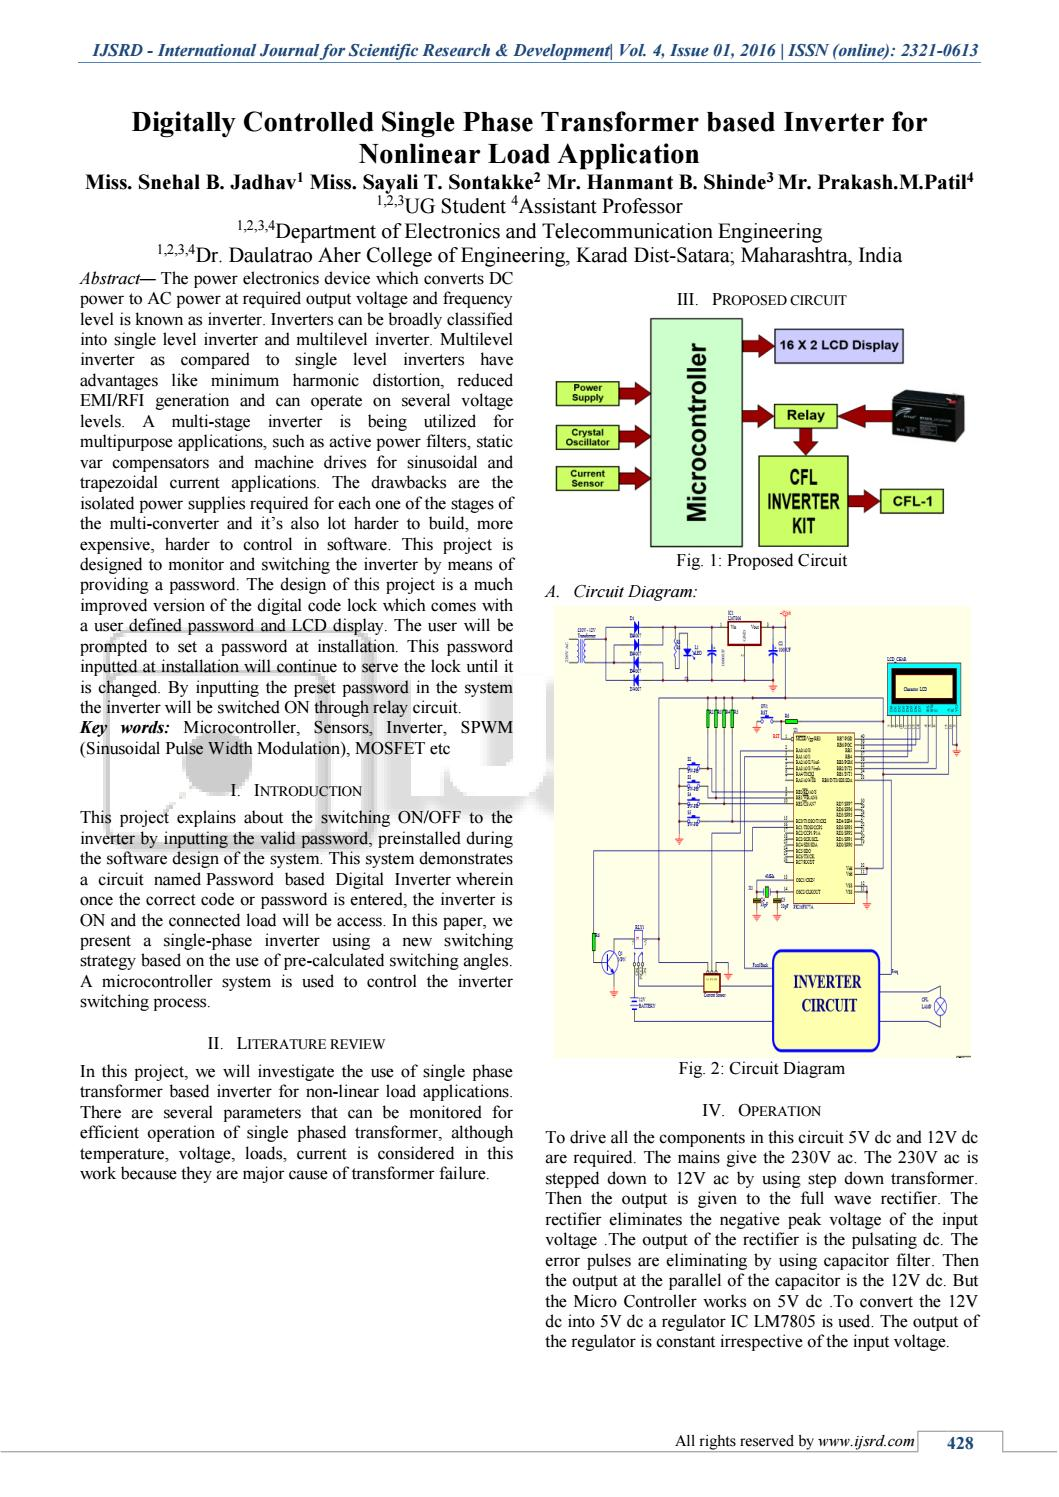 hight resolution of digitally controlled single phase transformer based inverter for nonlinear load application